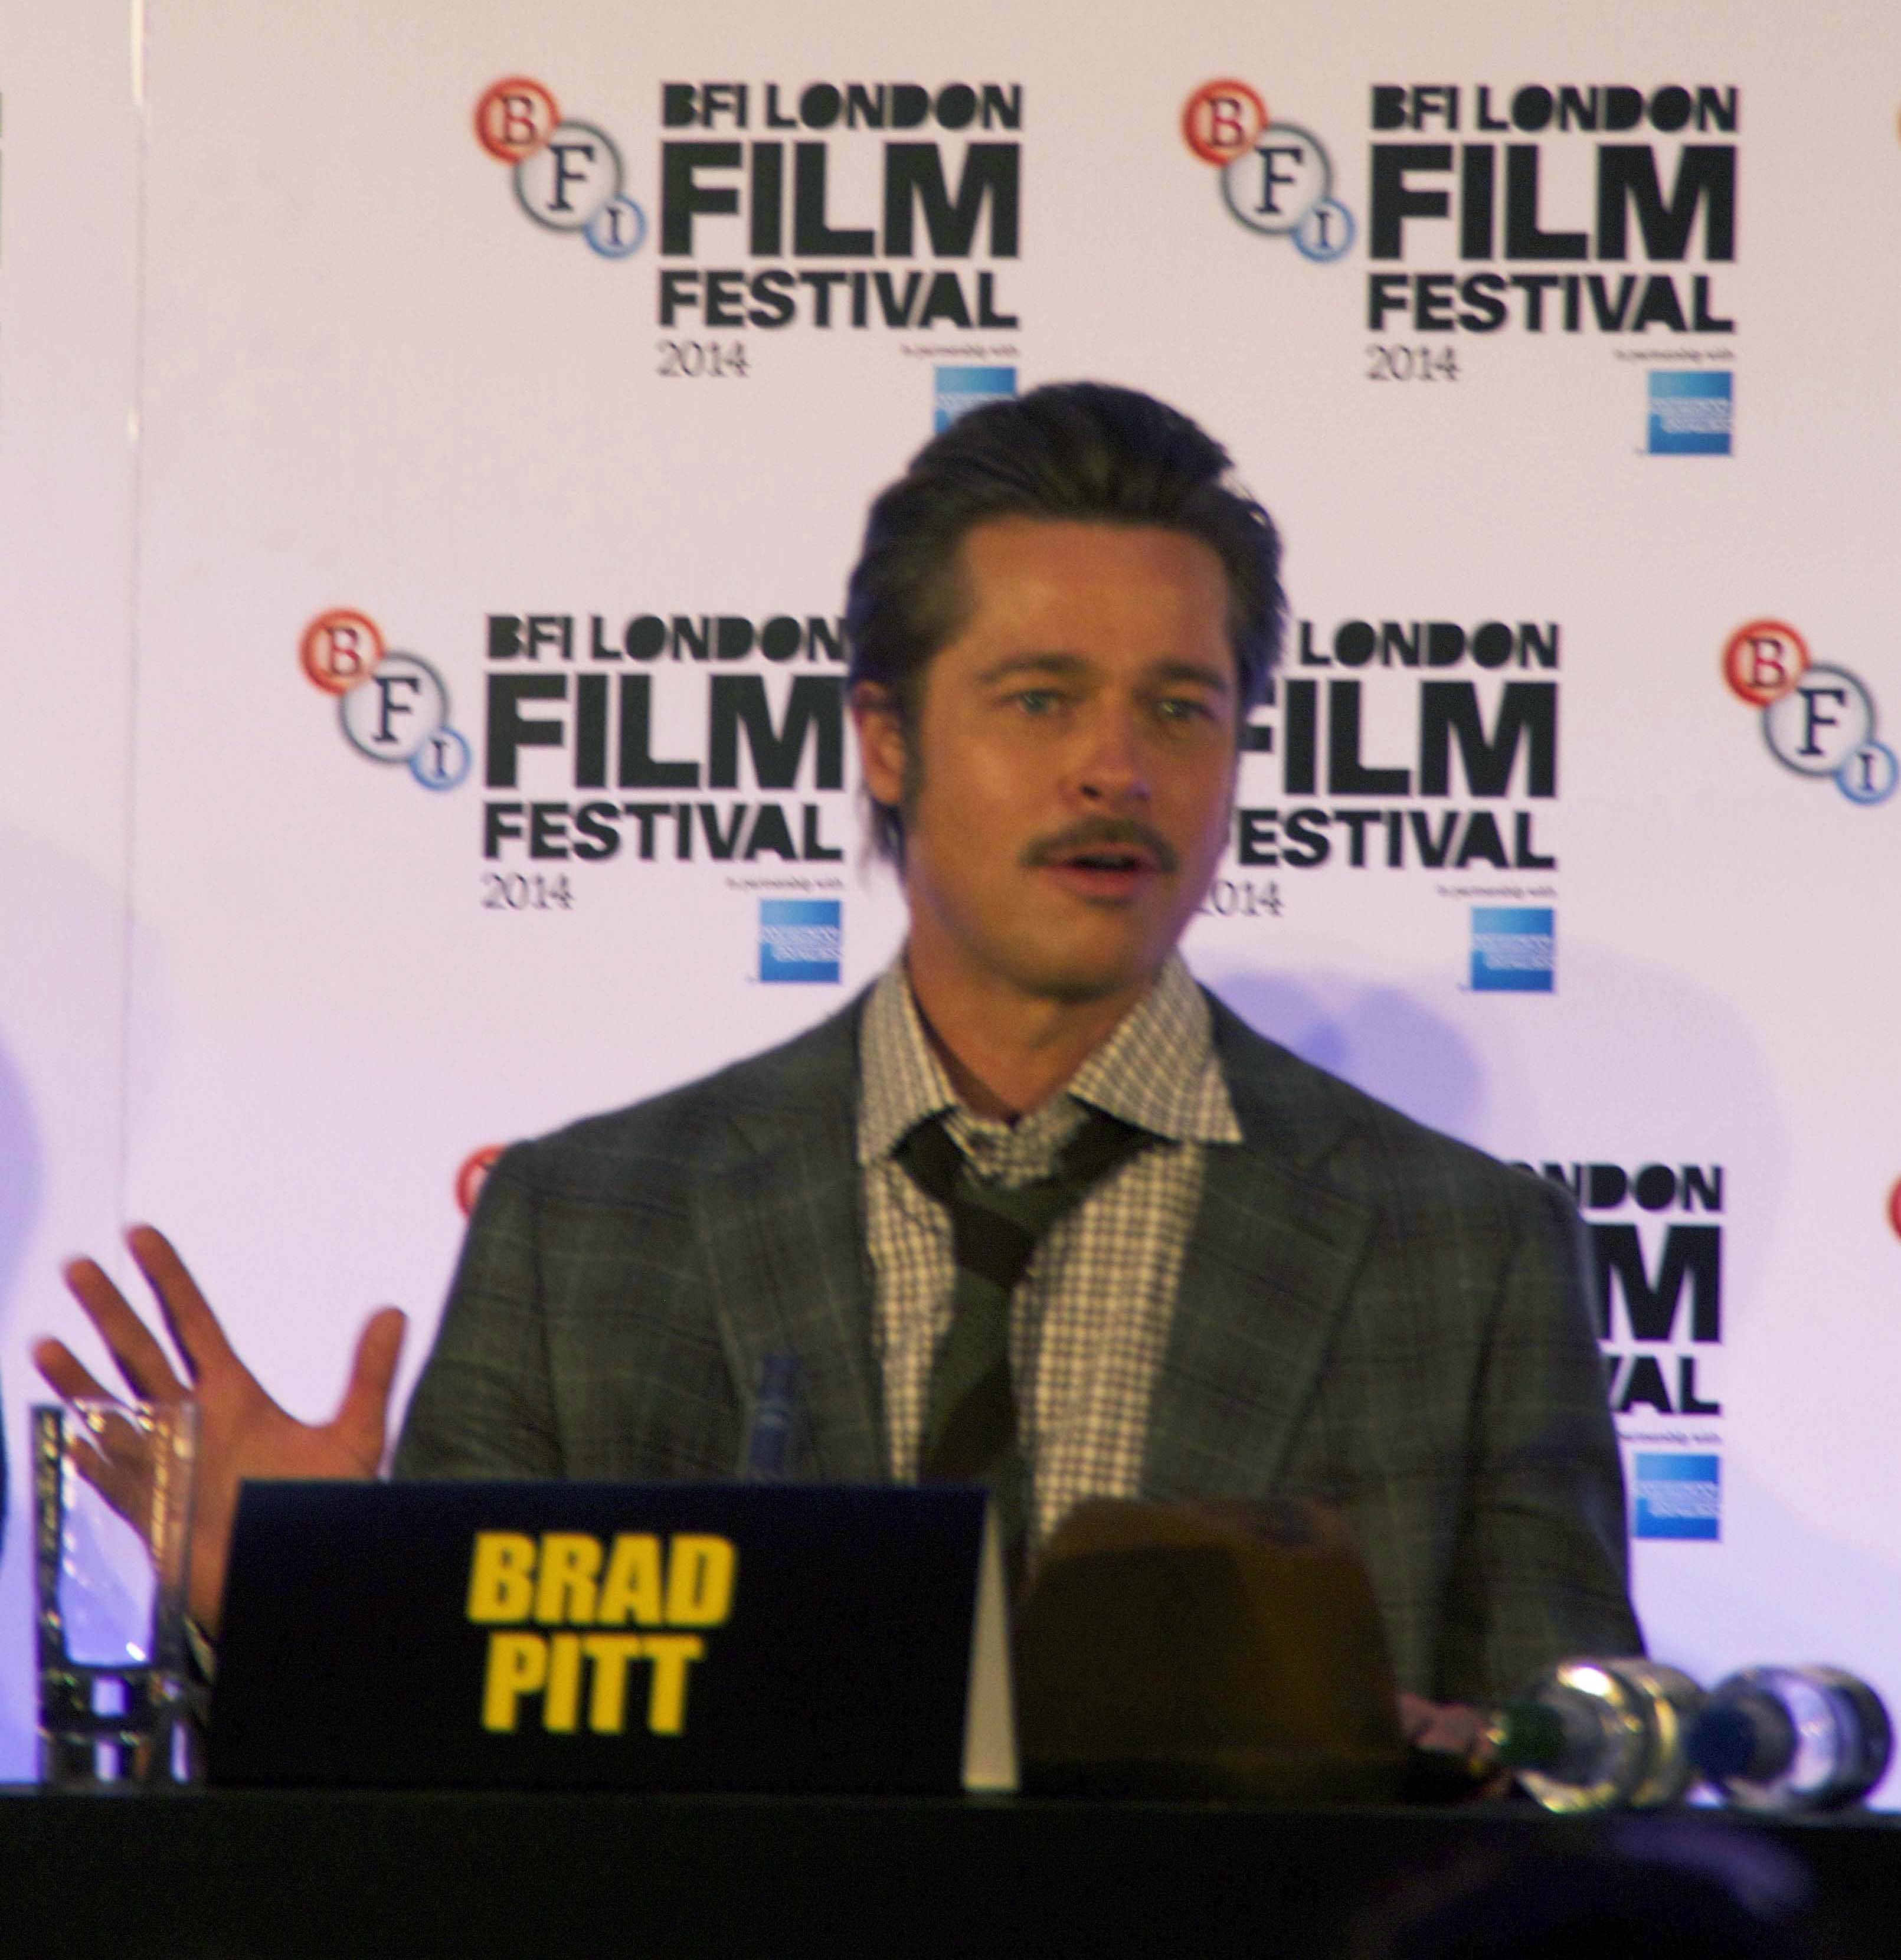 We caught up with Fury's Executive Producer and lead actor, Brad Pitt, Director/Screenwriter David Ayers and the rest of the film's cast at the London Film Festival to gain some insights into the making of this film.